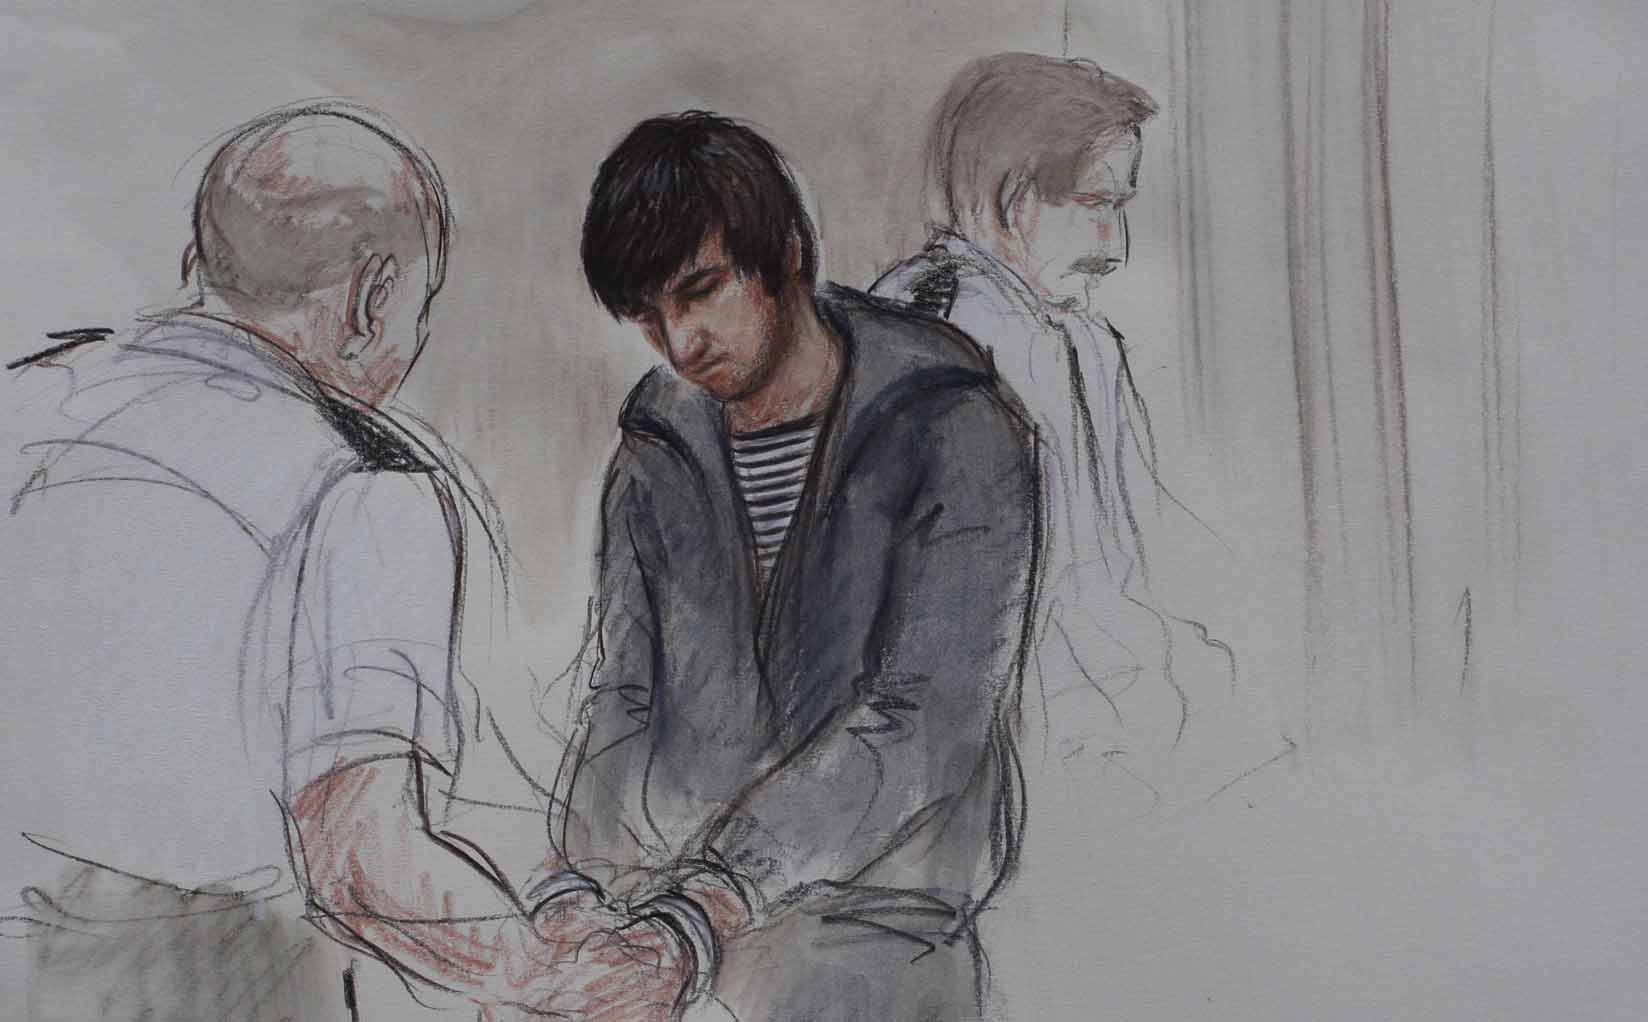 Nursery worker pleads guilty to raping toddler